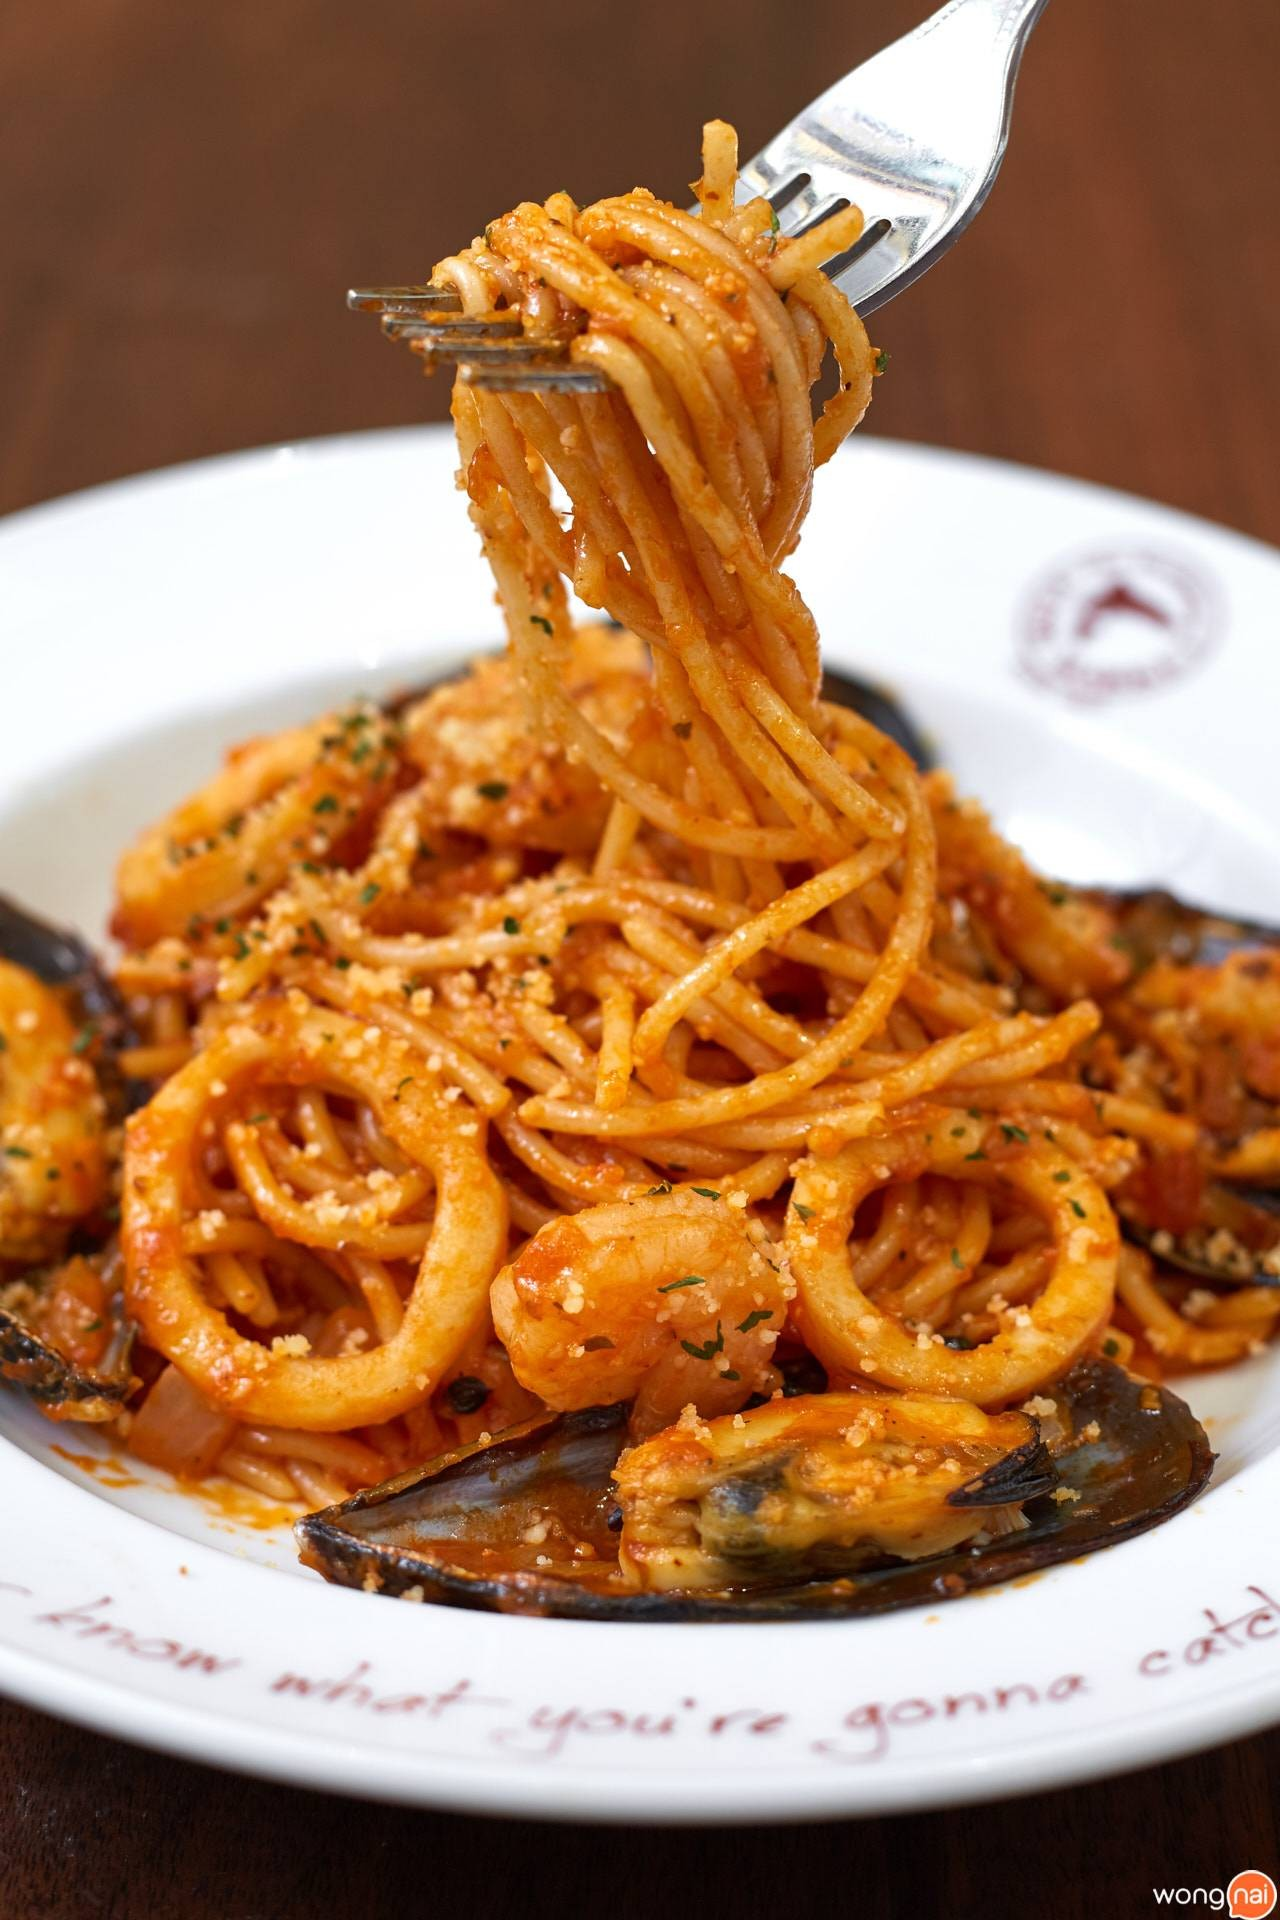 Spaghetti In The Sea ของร้าน The Manhattan Fish Market